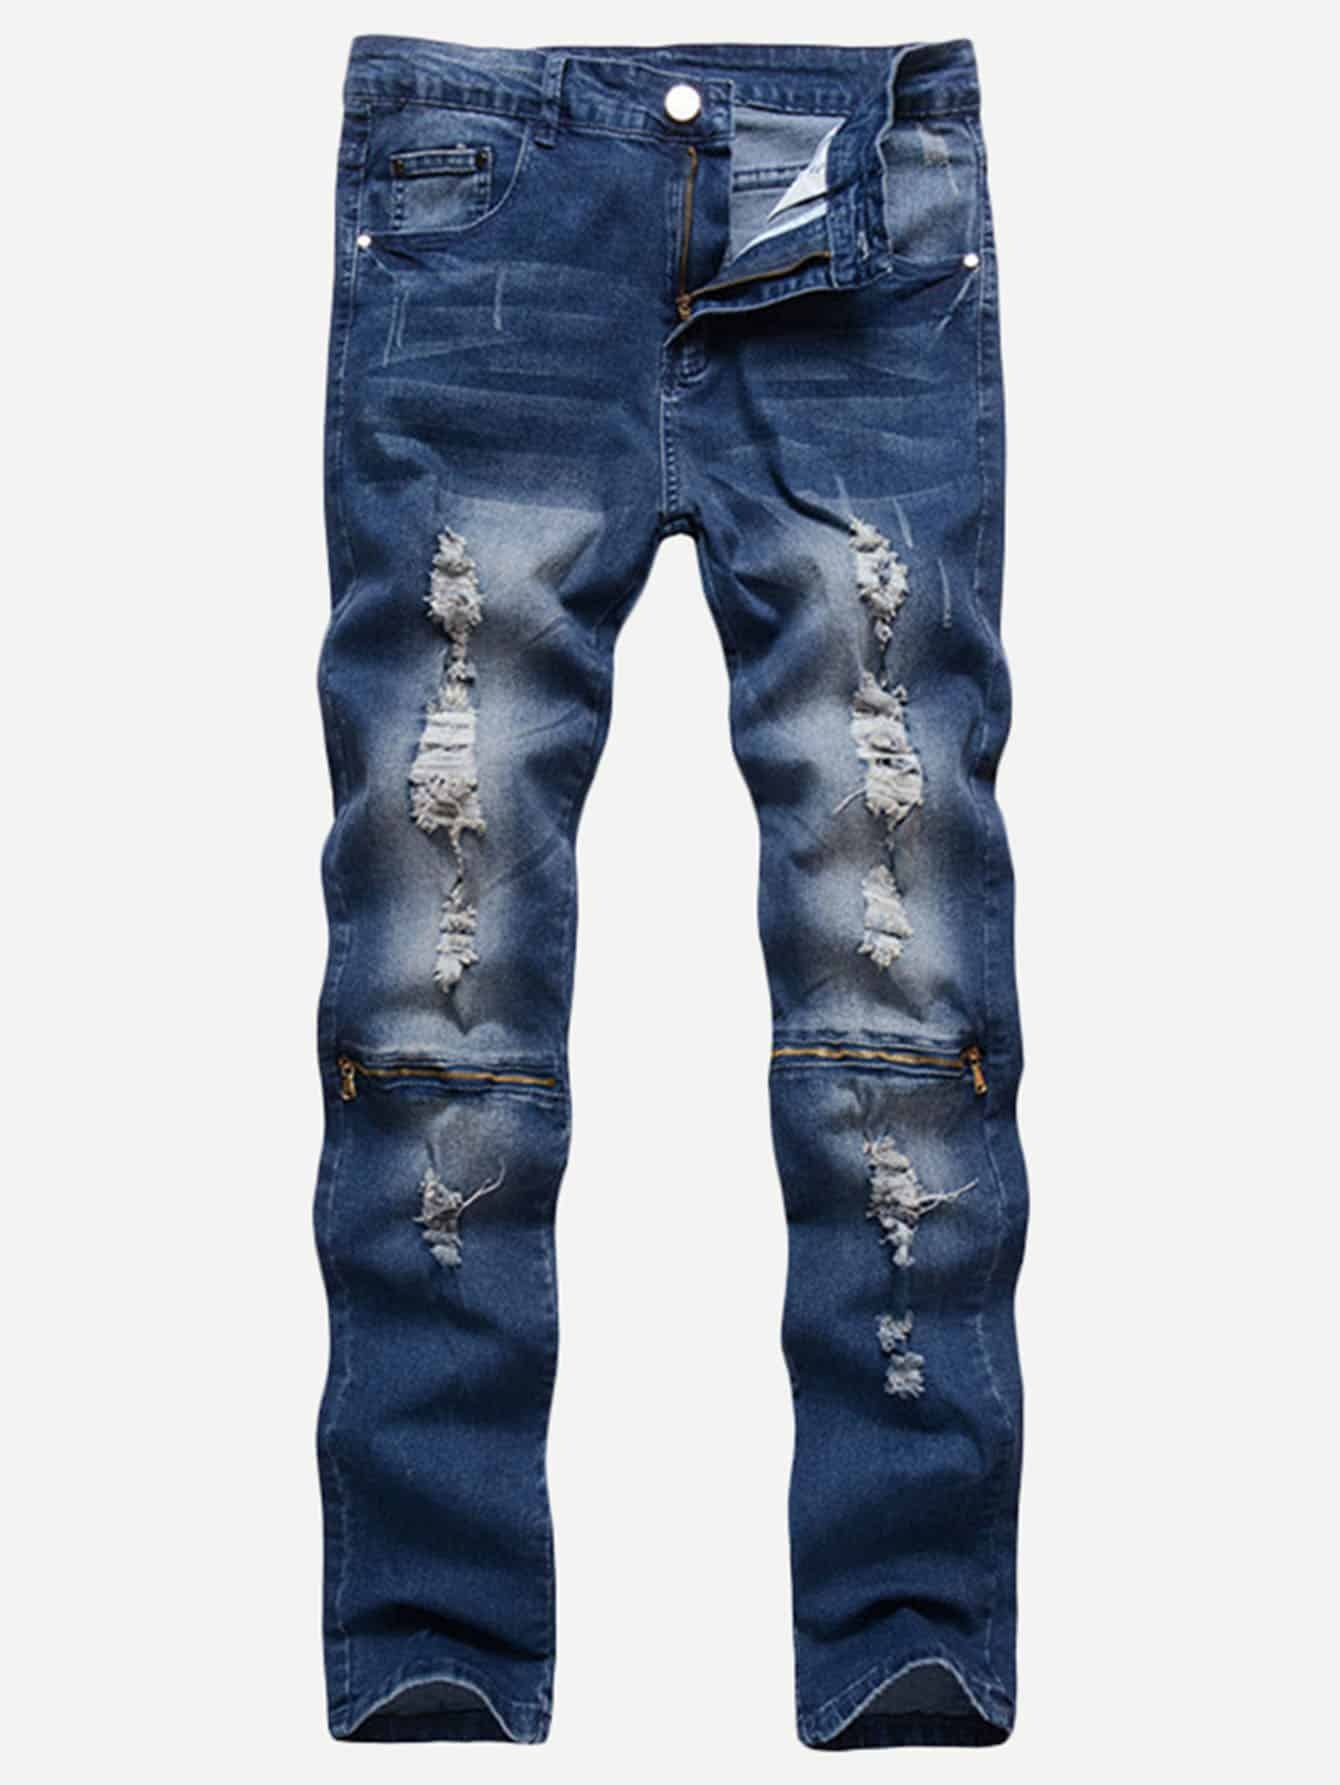 Men Zip Decoration Destroyed Jeans nostalgia retro design fashion men jeans european stylish dimensional knee frayed hole destroyed ripped jeans men biker jeans